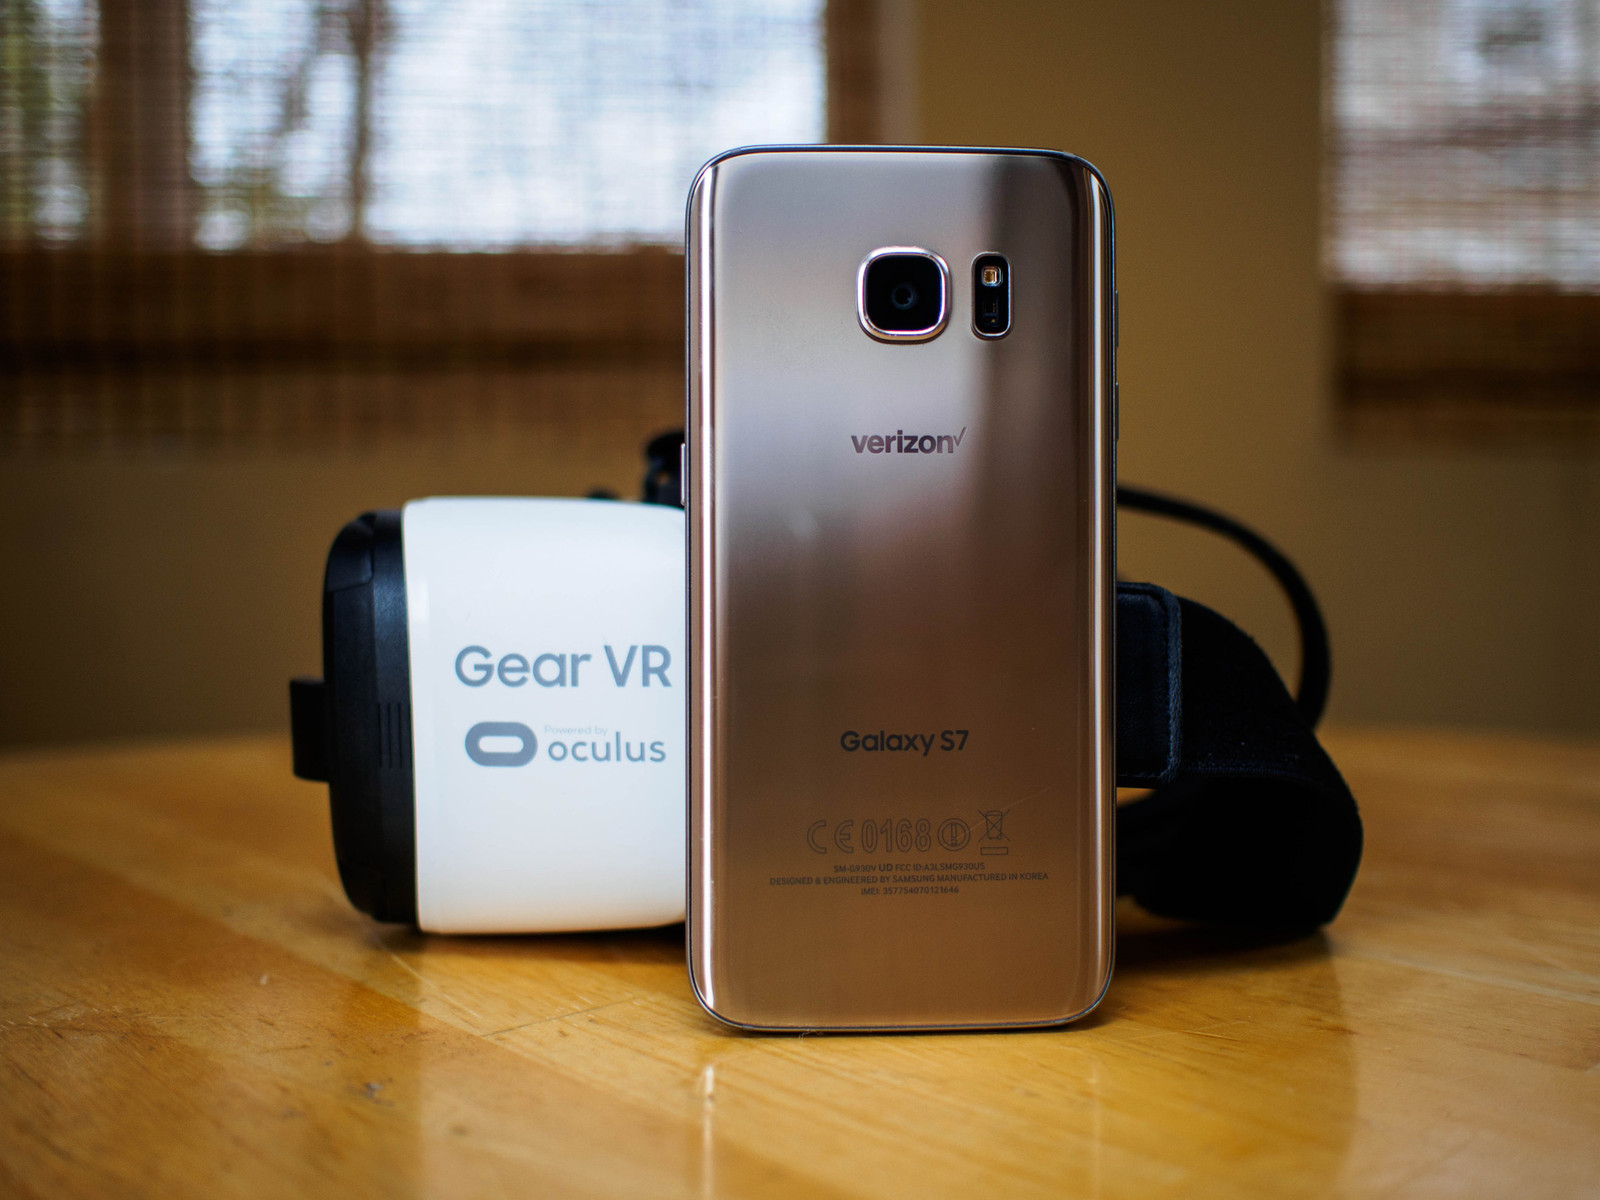 Plug in to your Gear VR and nothing happens? Here's what to